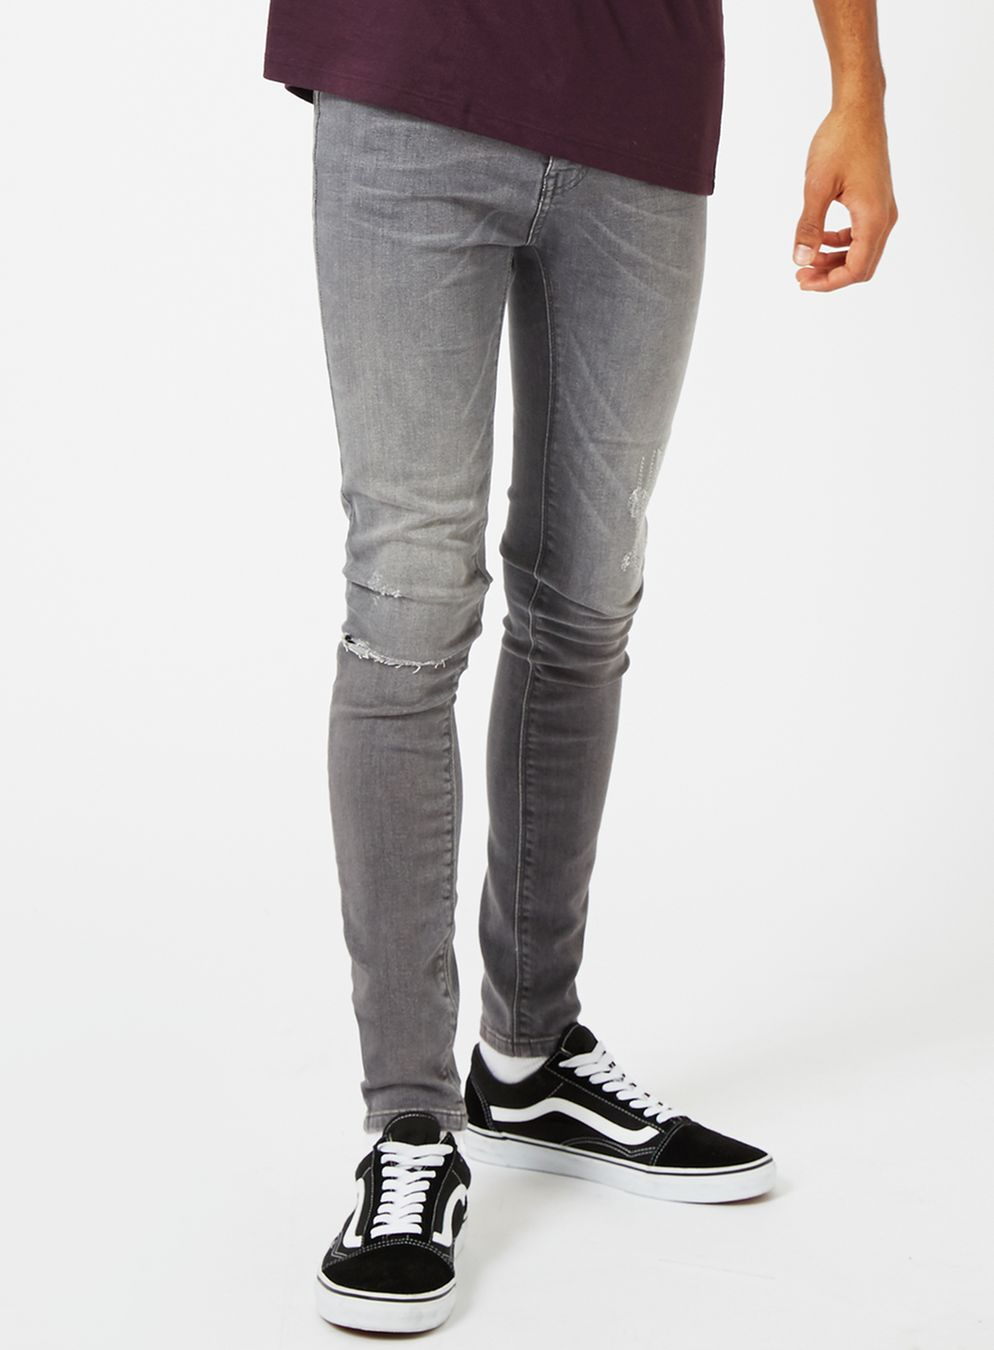 topman-grey-ripped-spray-on-jeans